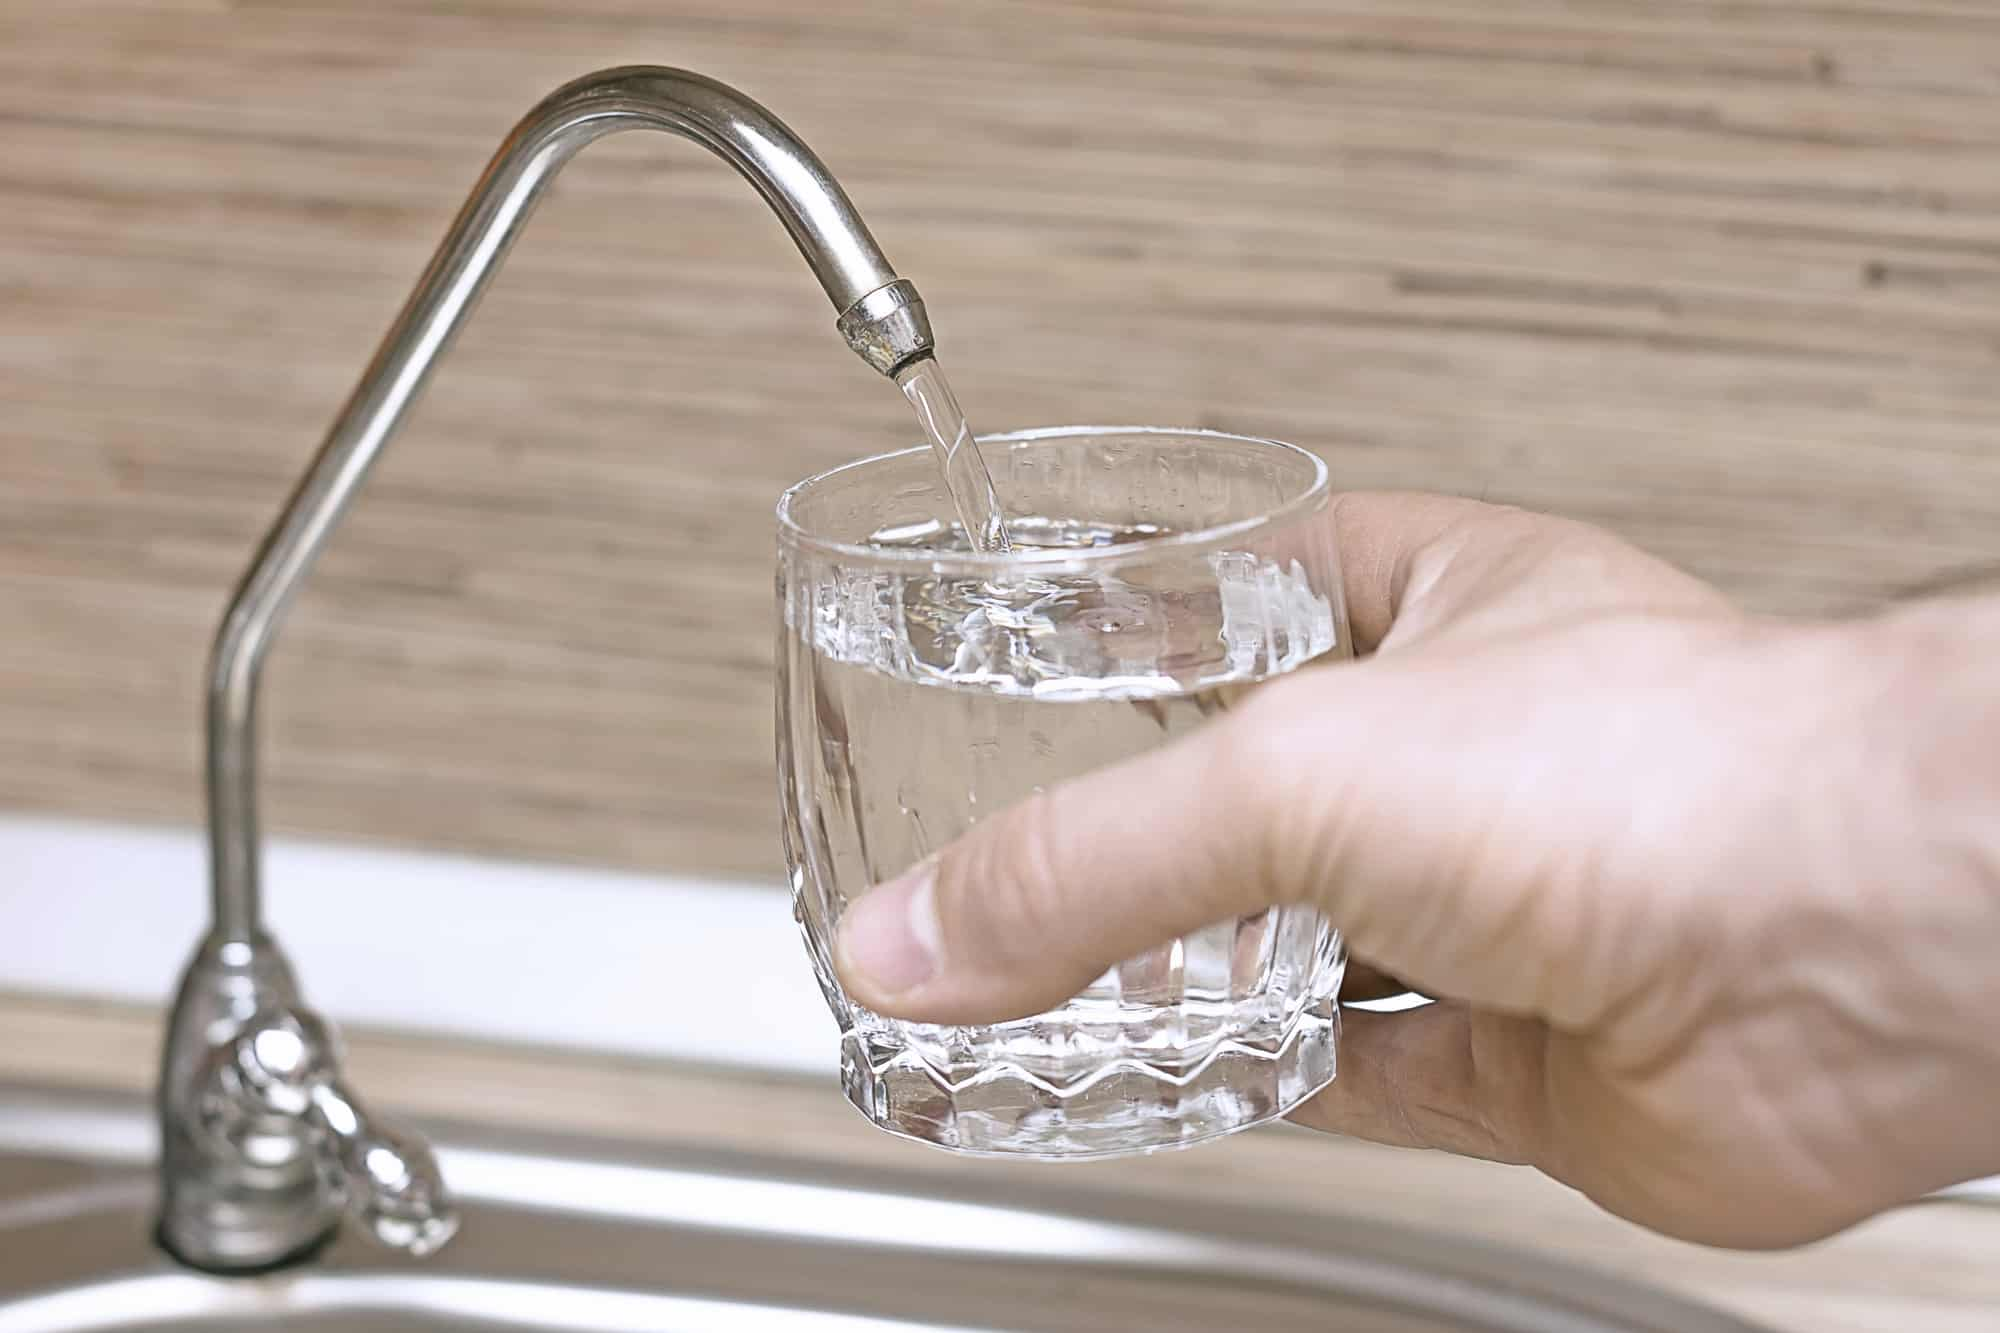 Man holding filling up glass of water at sink